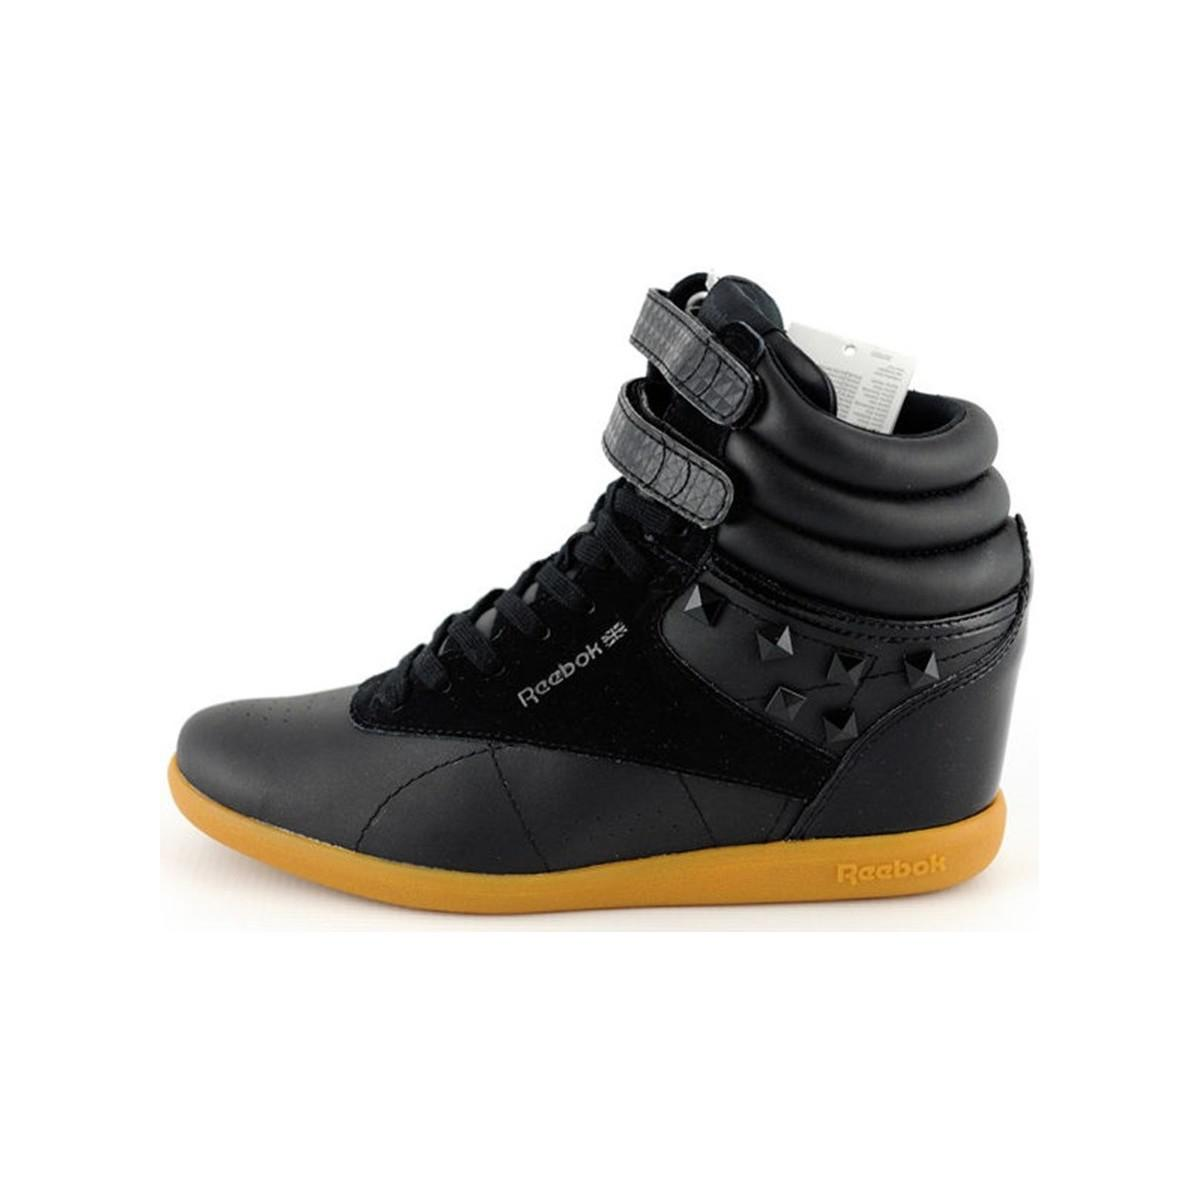 d0df4db947467c Reebok Fs Hi Int Wedge Women s Shoes (high-top Trainers) In Black in ...